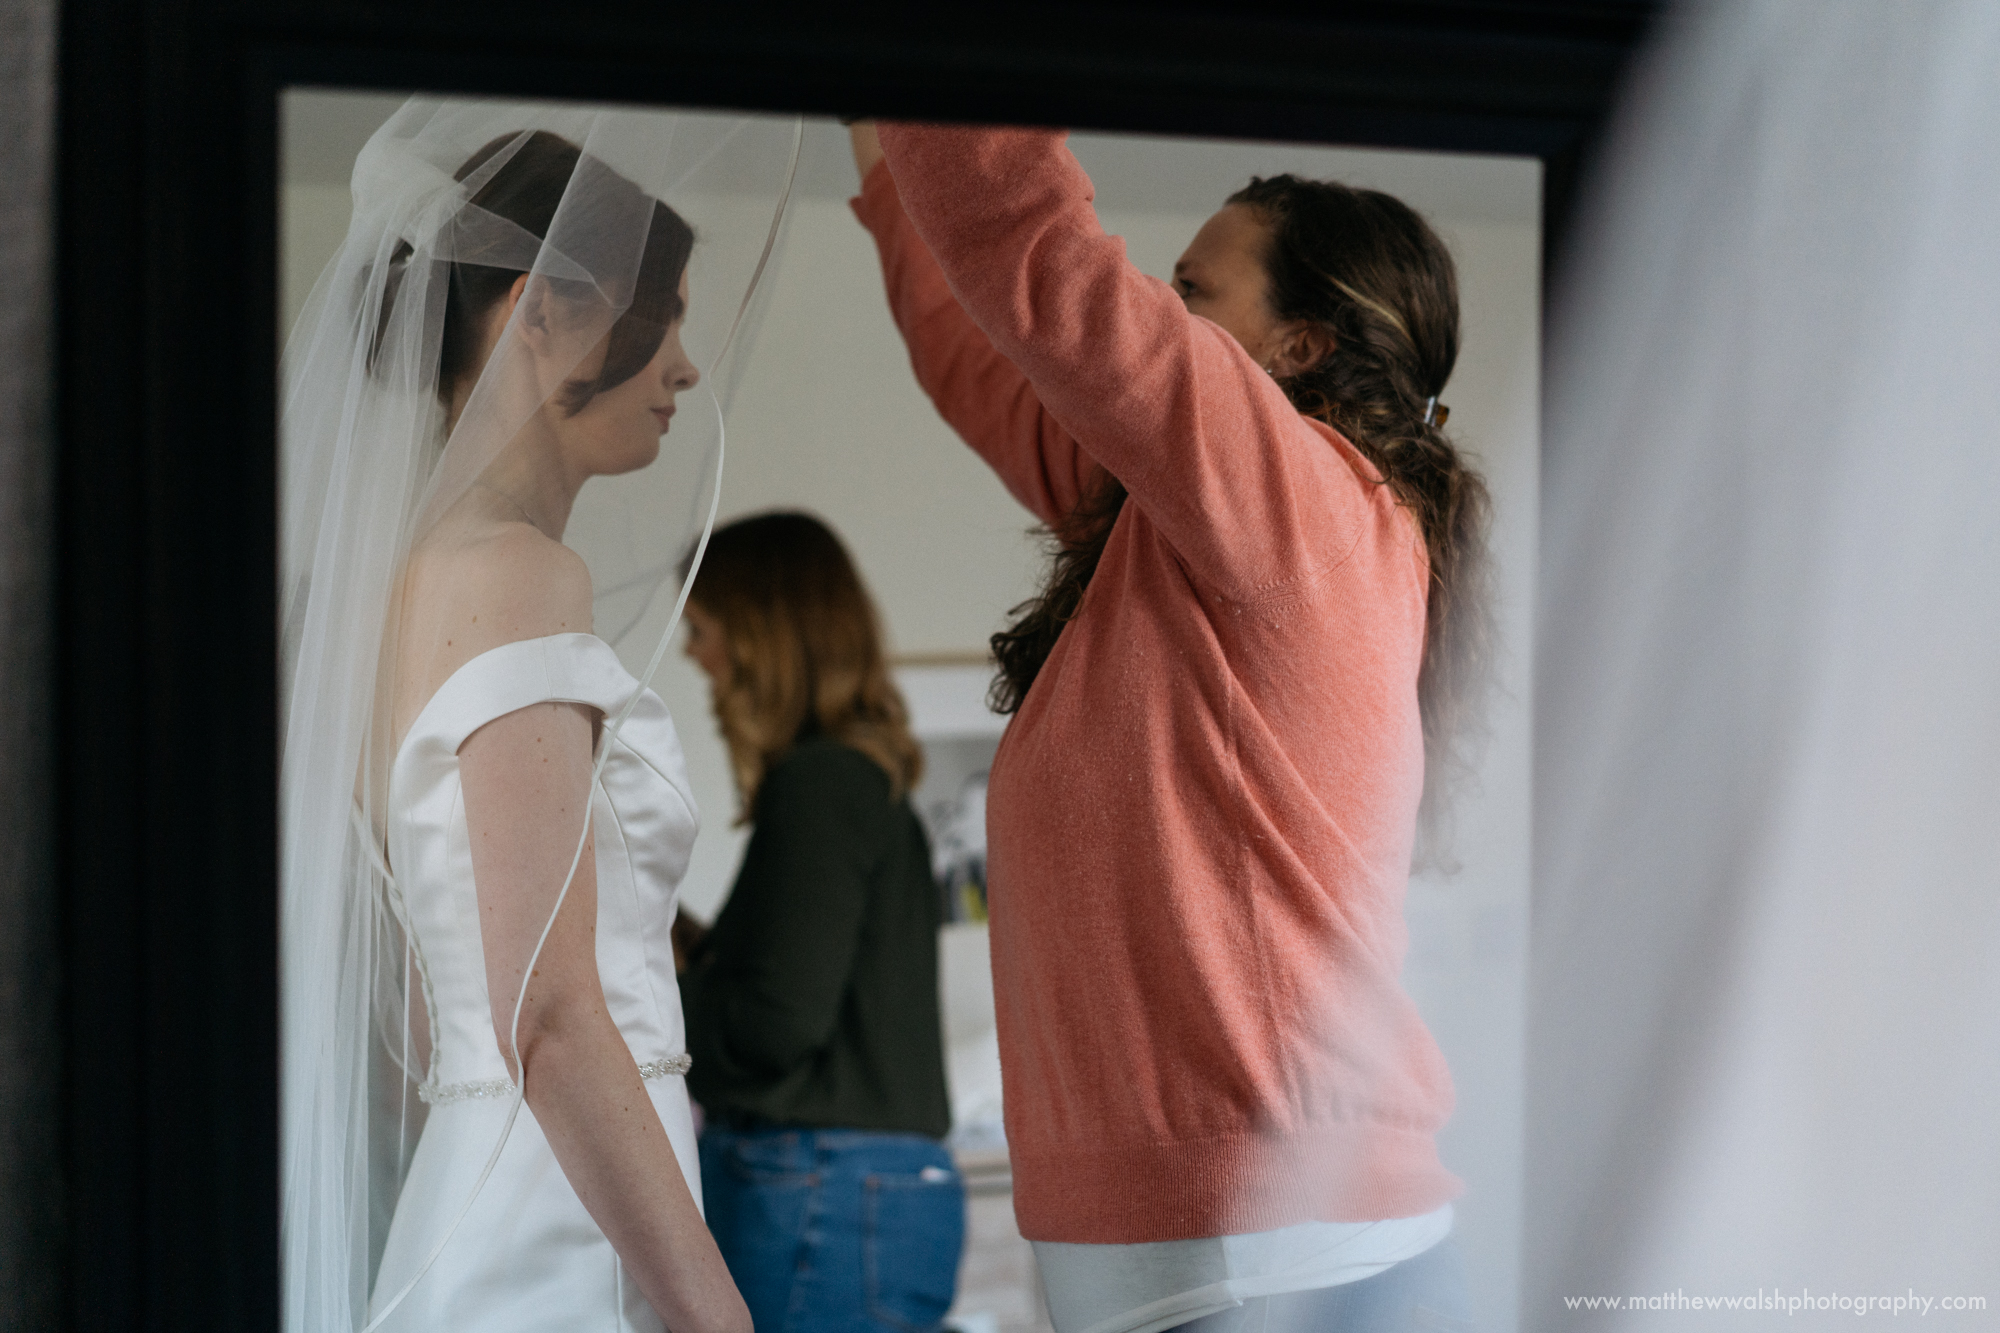 The hair stylist helping the bride with her veil